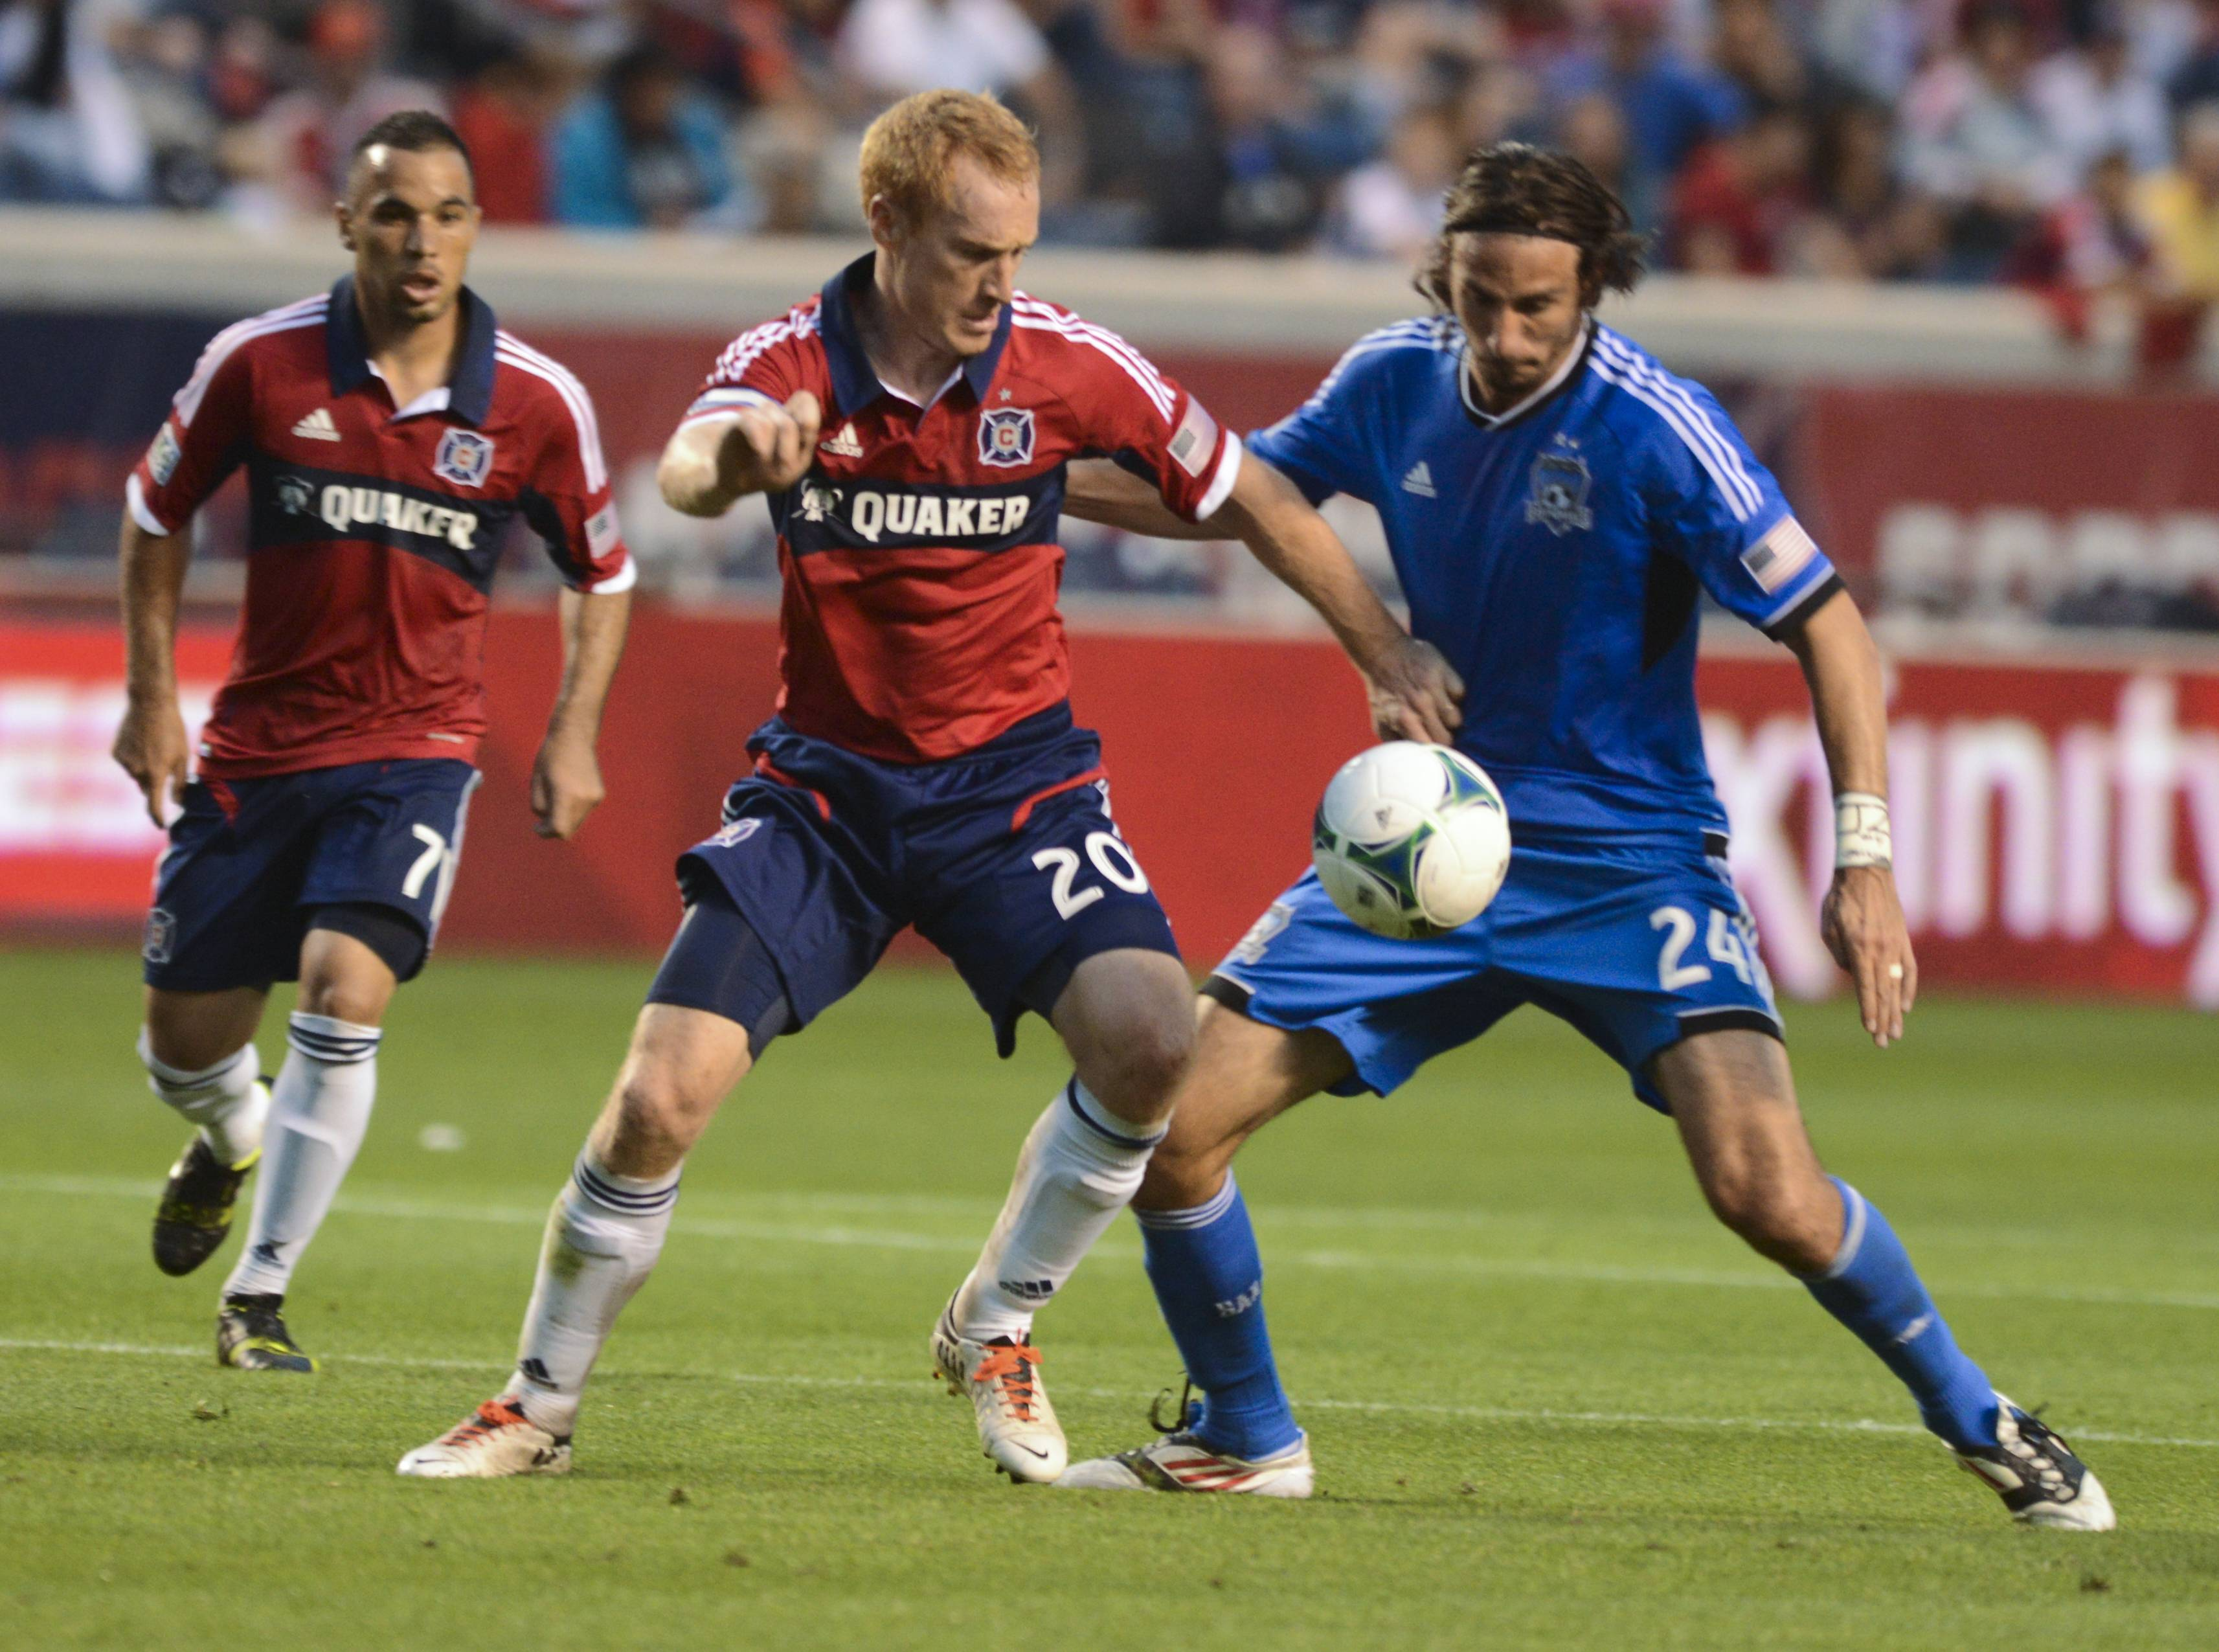 Jeff Larentowicz, who played for three seasons with Colorado, returns Wednesday with his Fire teammates to play the Rapids in a Major League Soccer match.